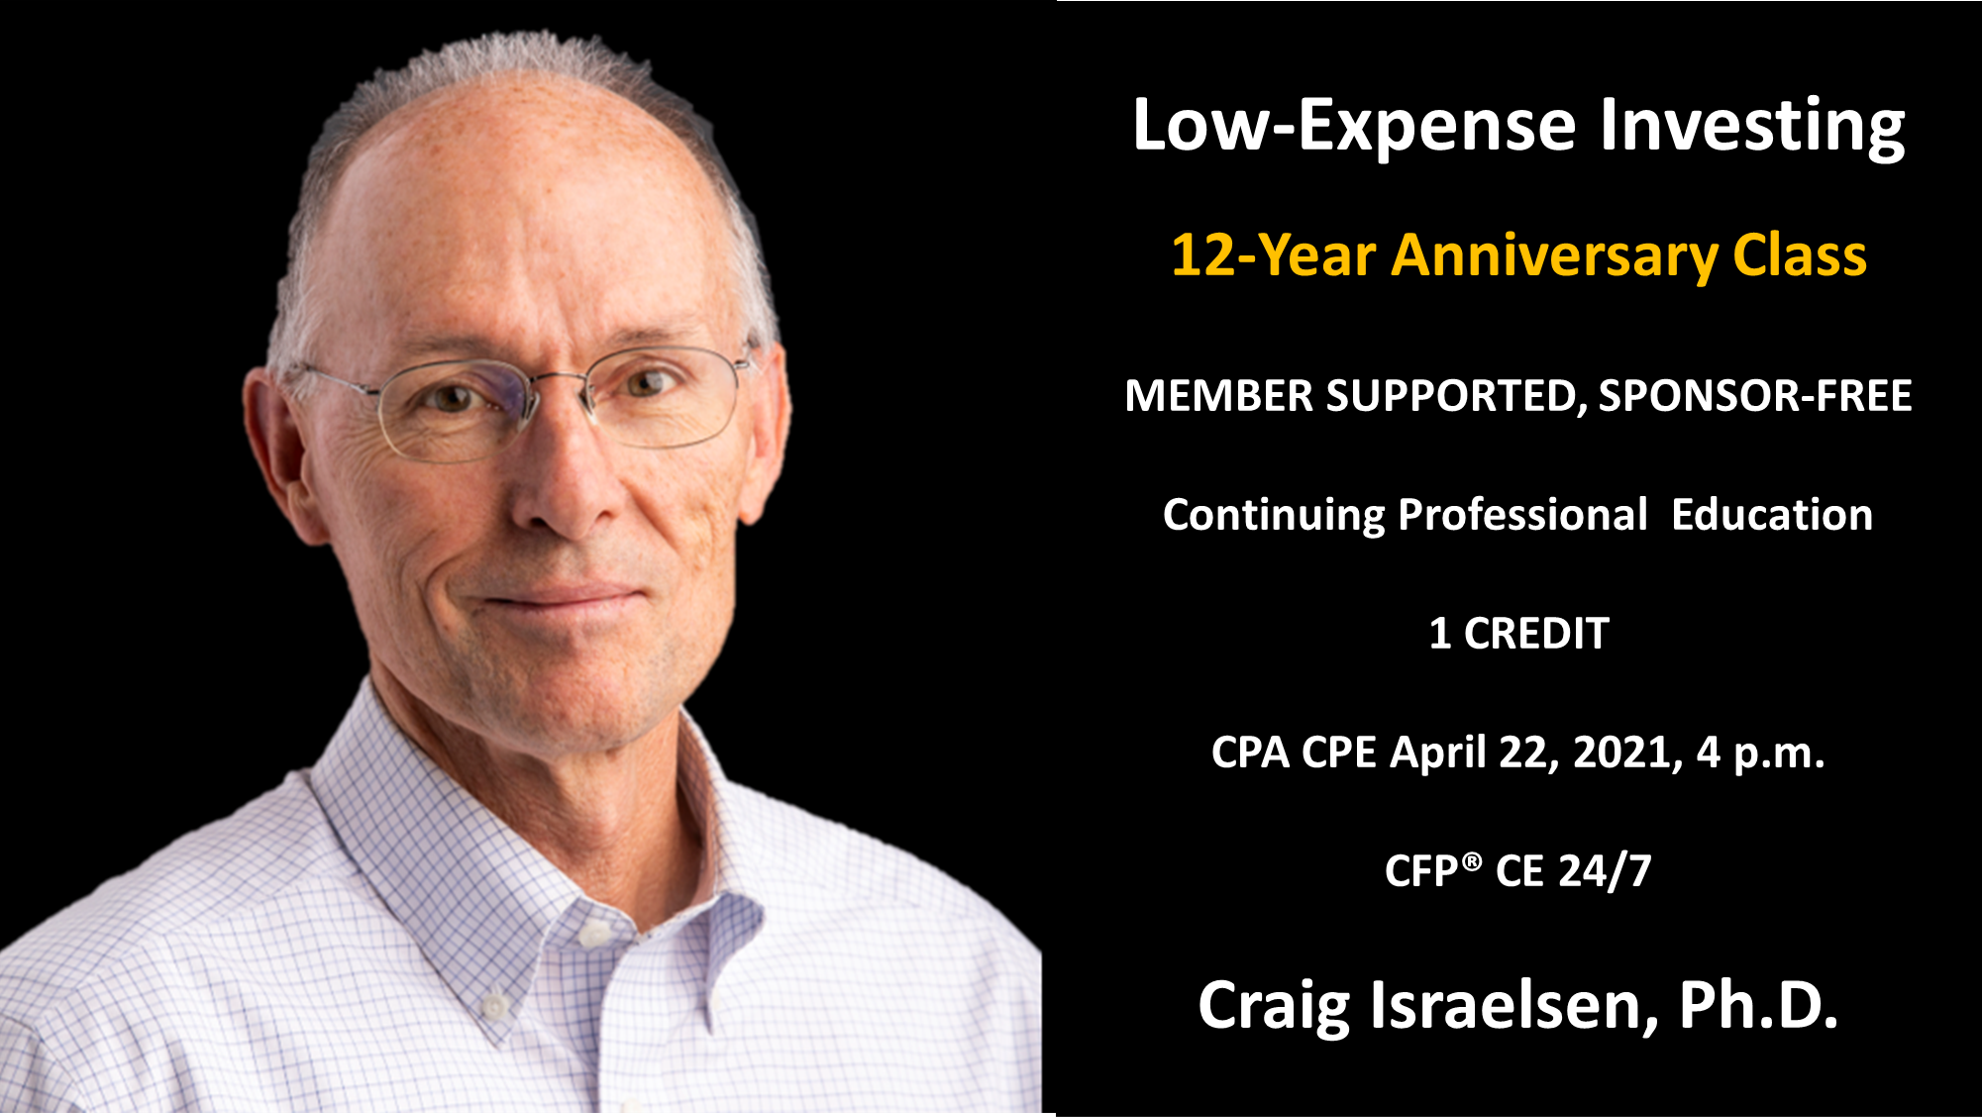 Low Expense Investing For Professionals Course, Craig Israelsen, Ph.D.